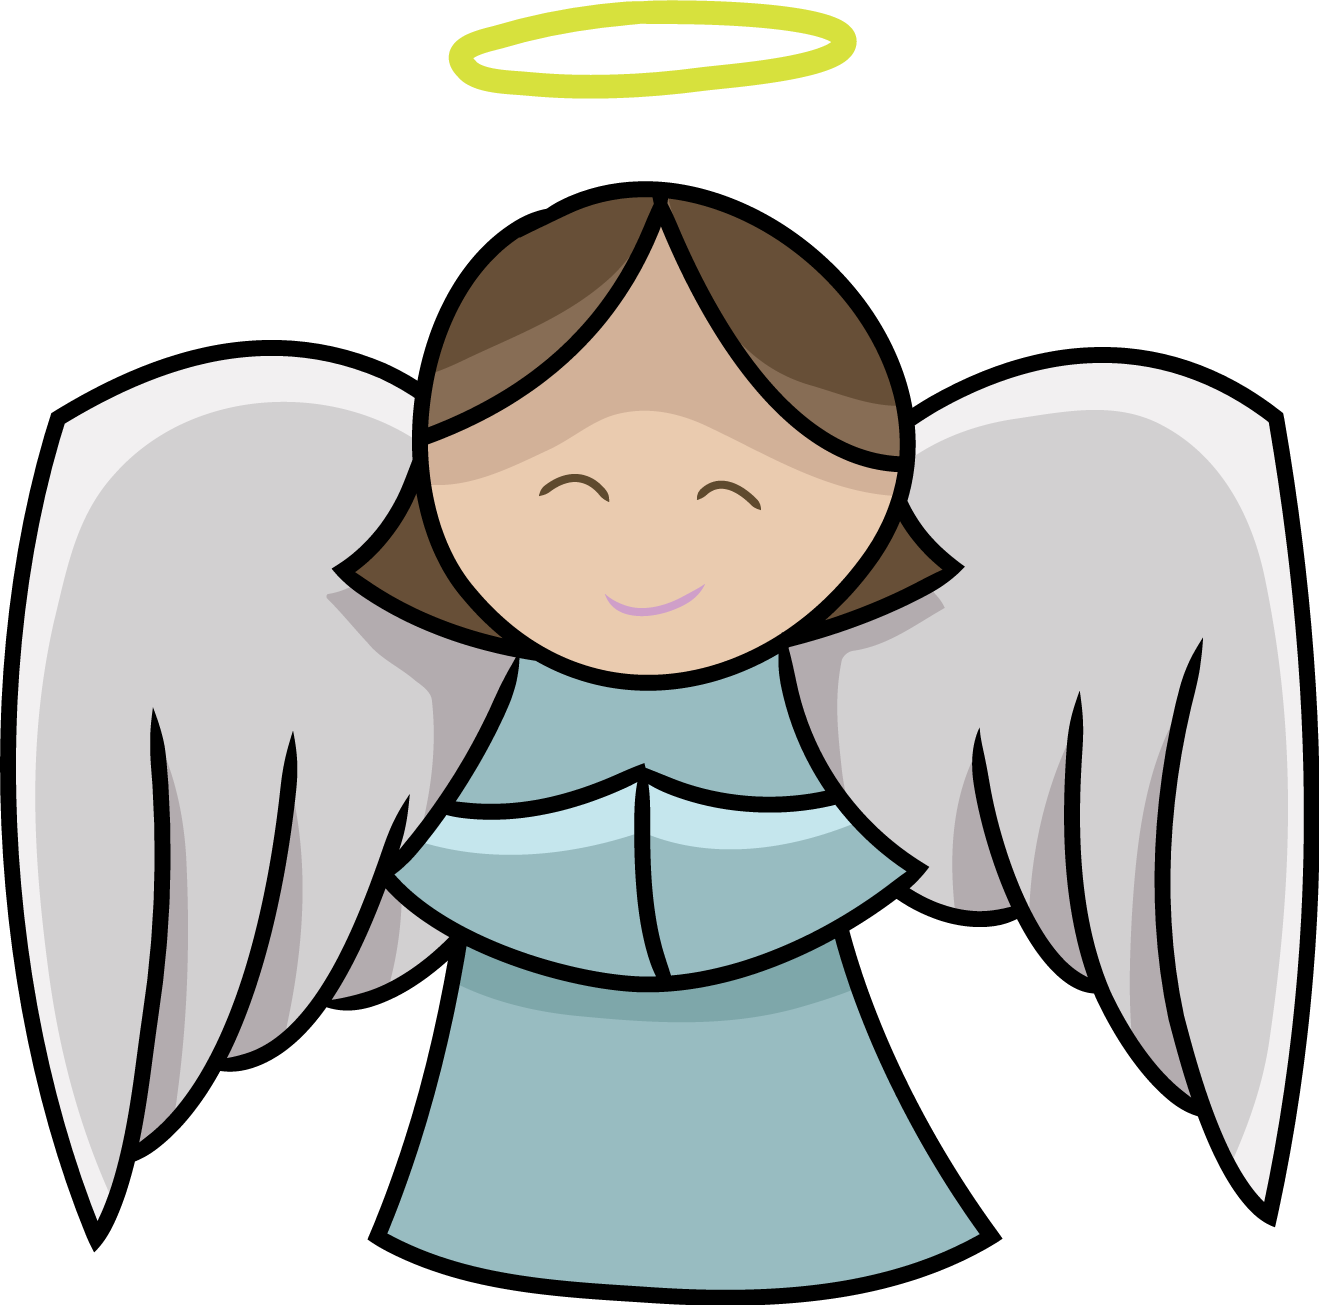 angel clip clipart easy icons cliparts personal project